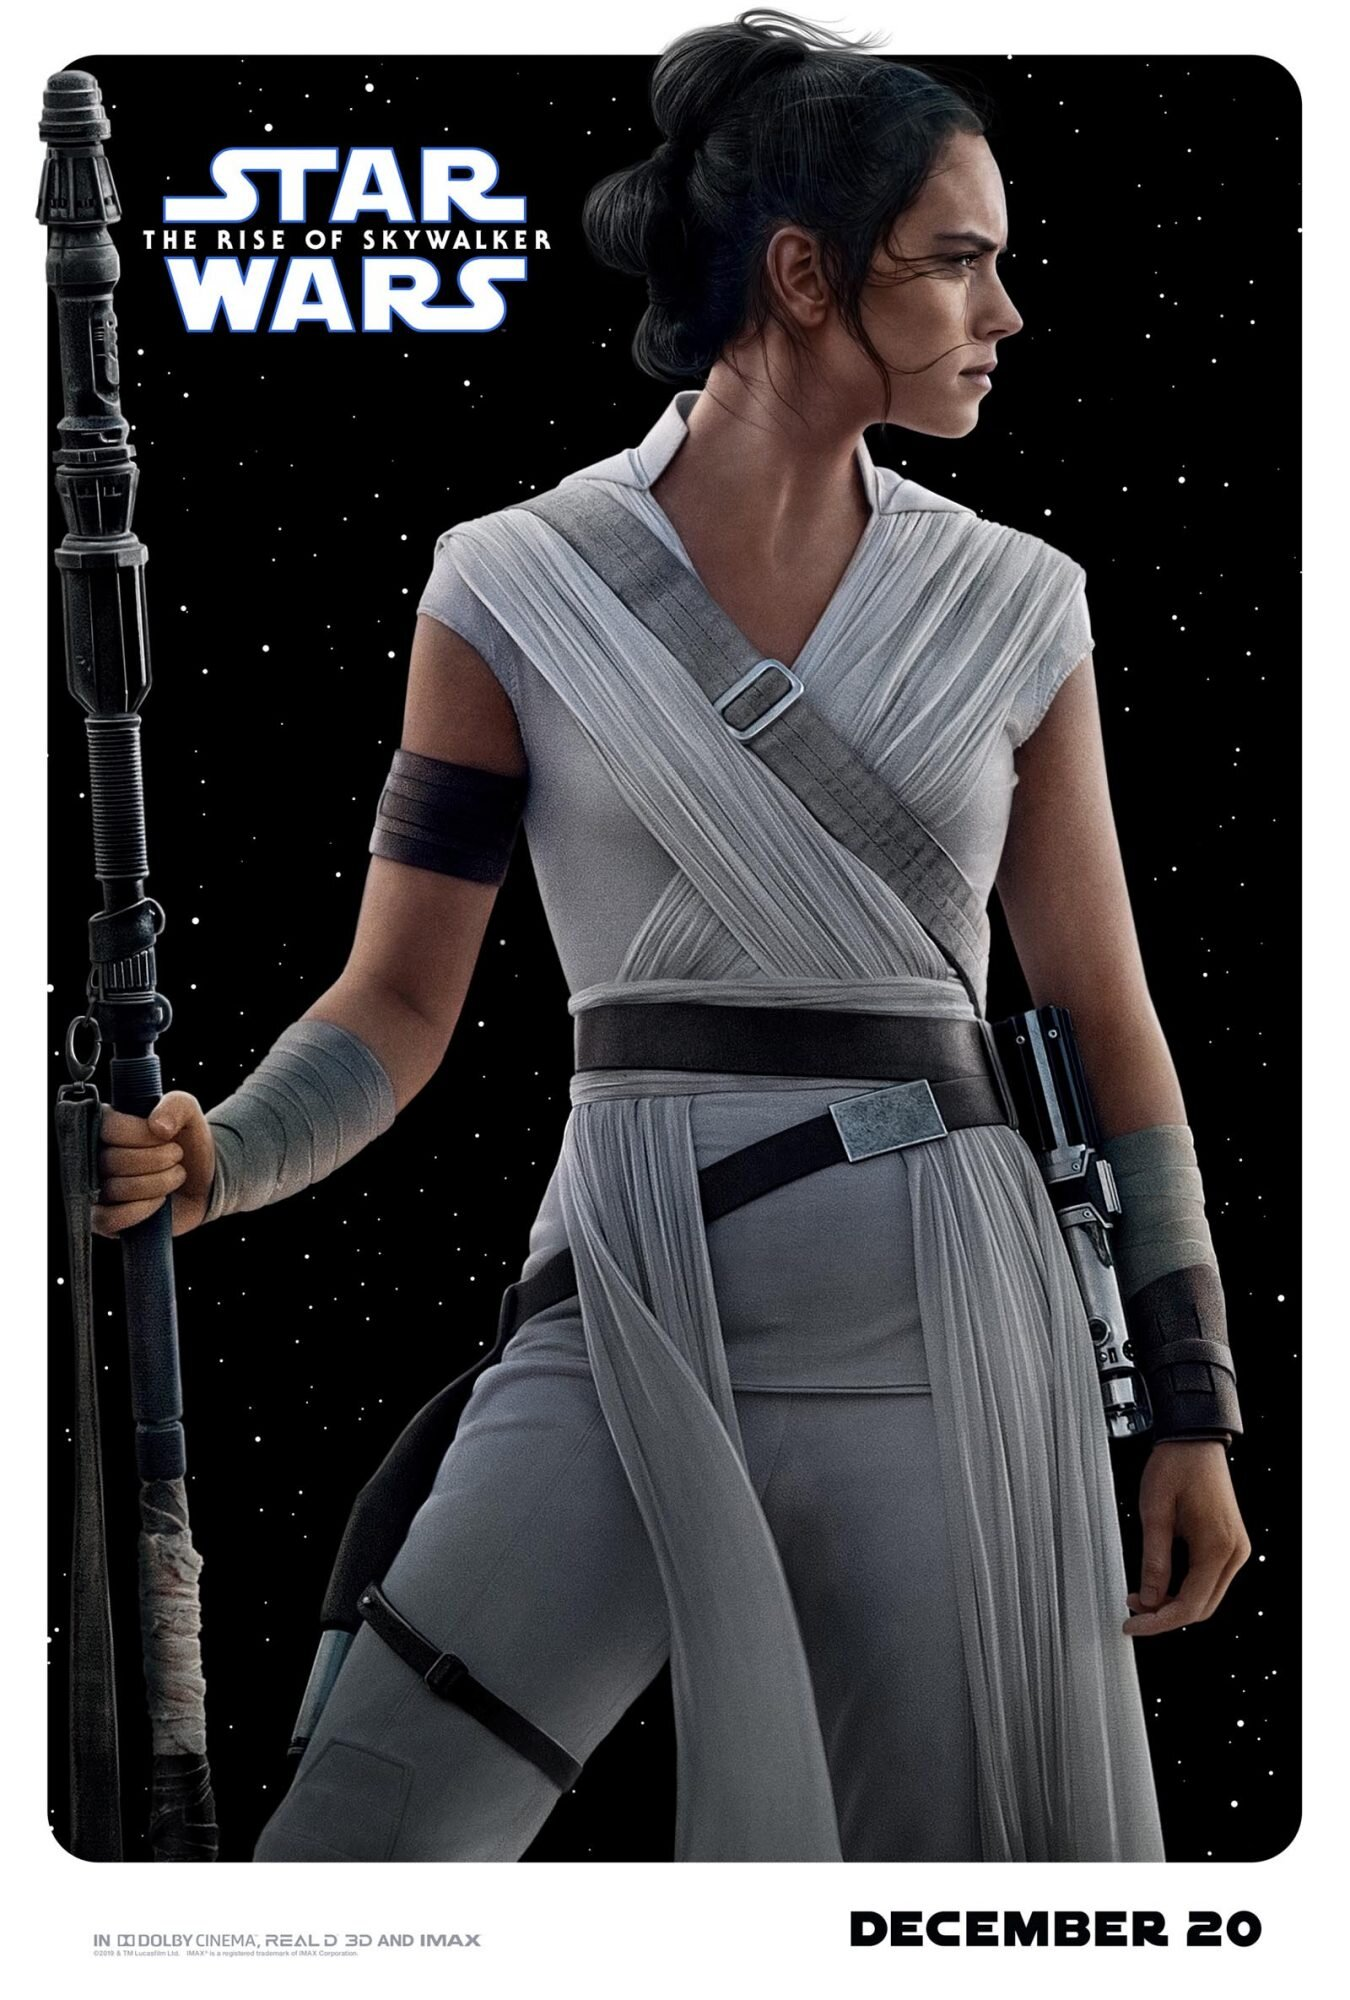 Star Wars The Rise Of Skywalker Releases 12 Character Posters Ew Com